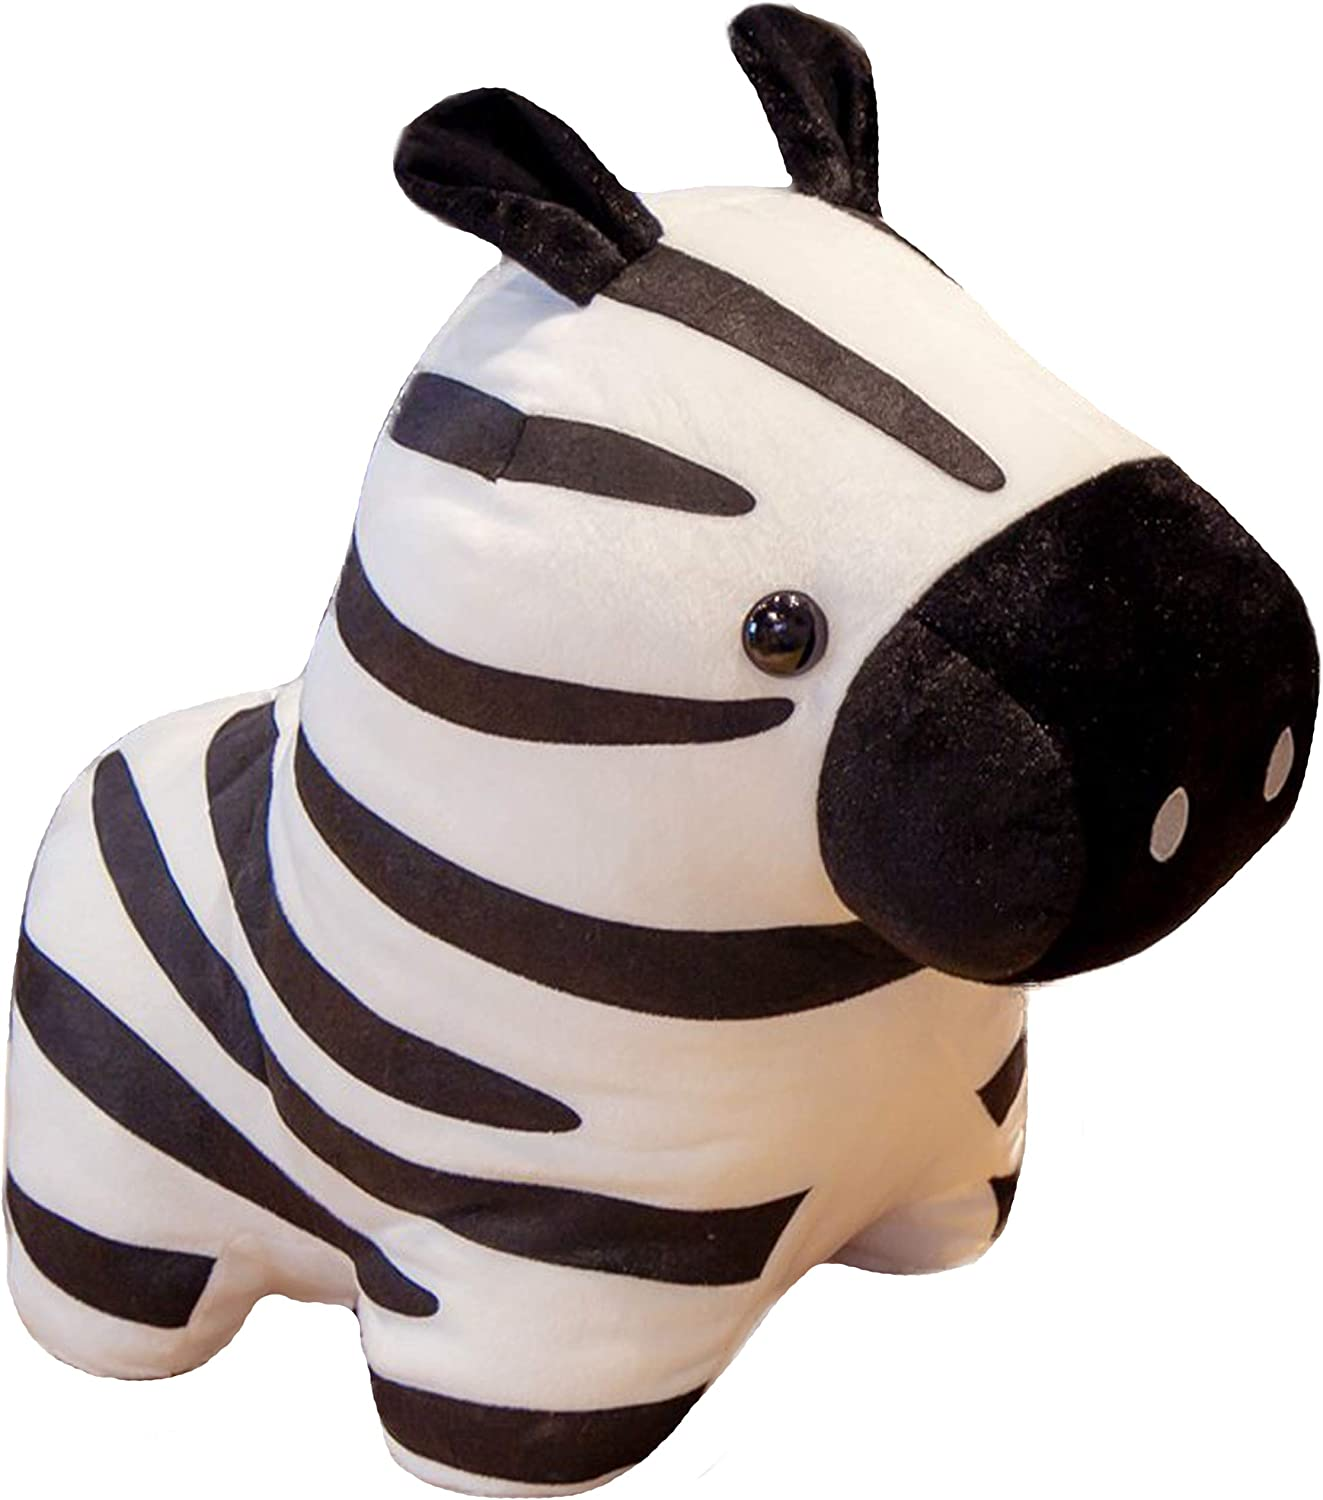 N-A Soft Zebra Plush Striped Horse Hugging Pillow Pet, 15.7X 21.7 Inch Cute Zoe Zebra Stuffed Animals Toy Cushion Home Decor Birthday Xmas Kids Gifts